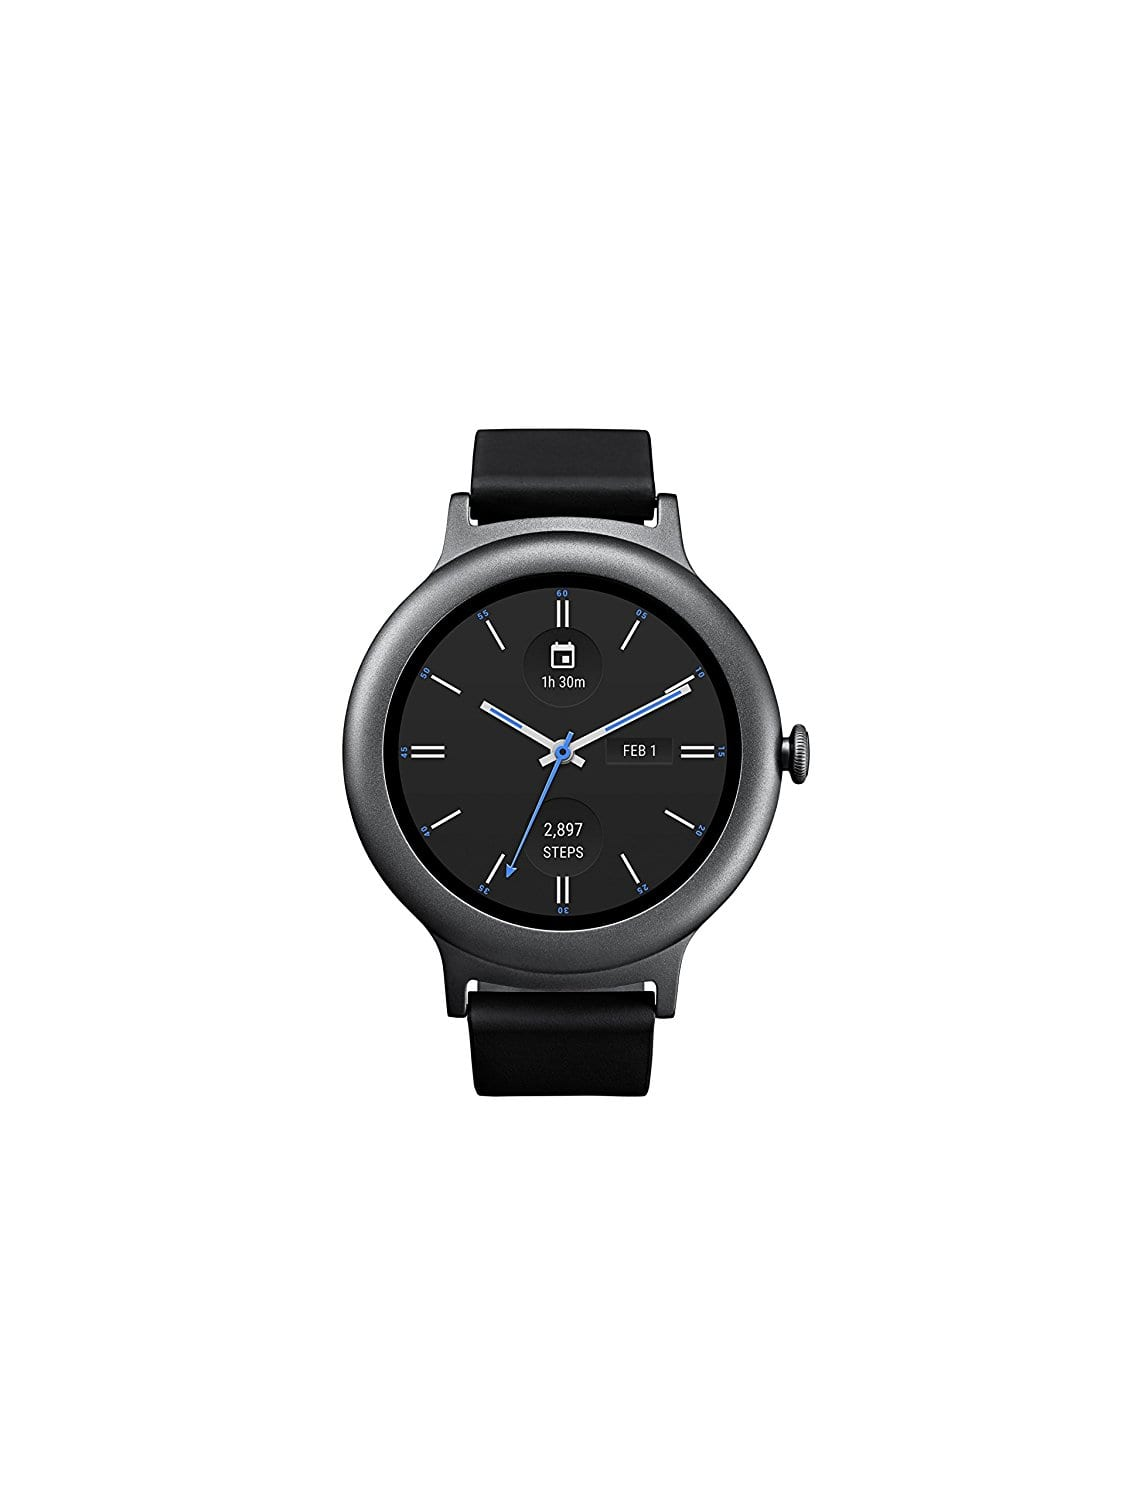 LG Electronics LGW270 Smartwatch with Android Wear 2.0 - Titanium: $100 @ Amazon